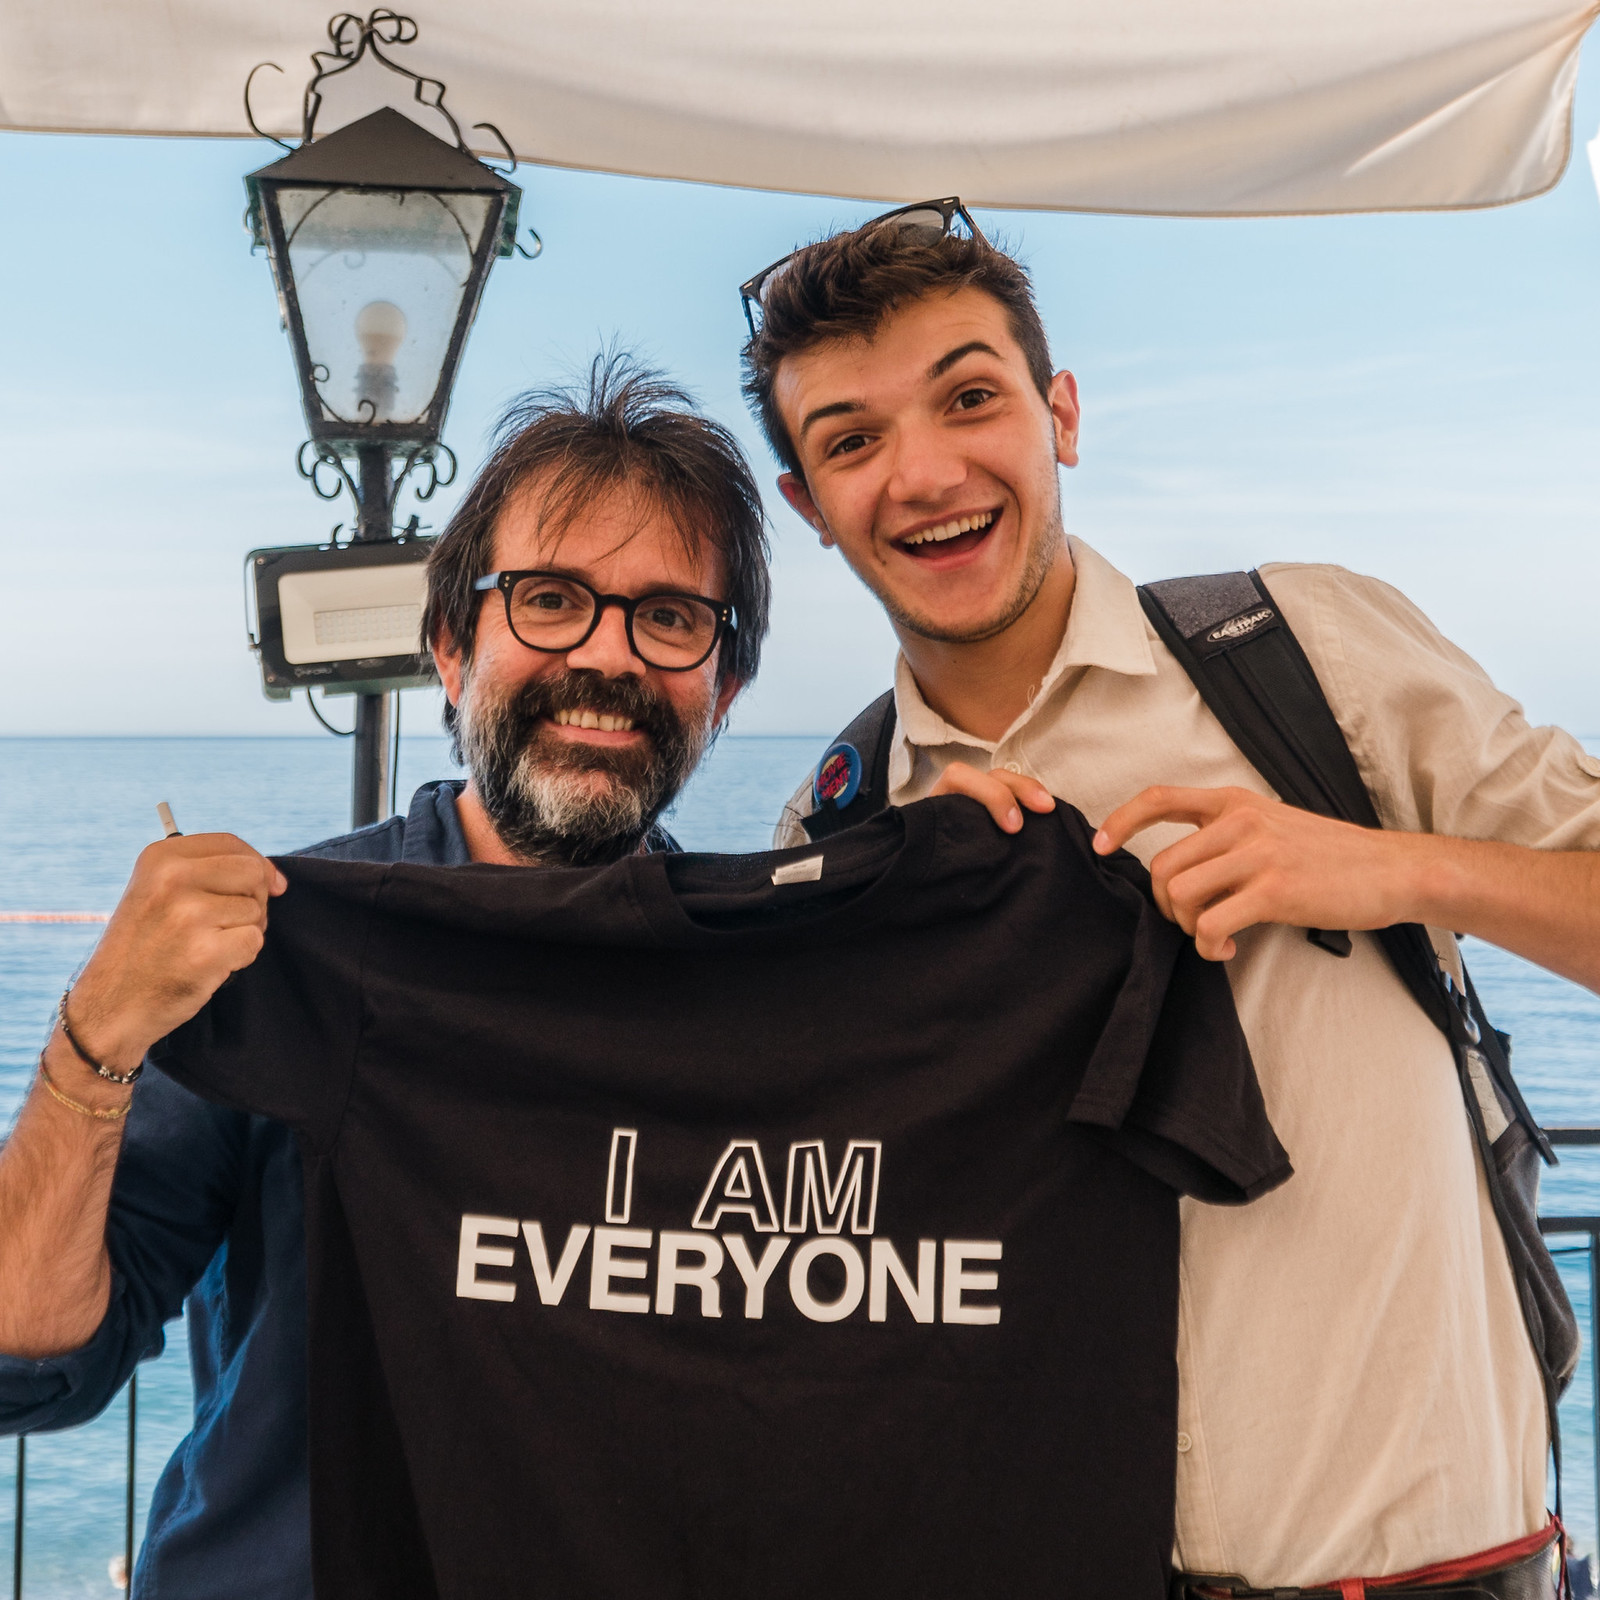 a photo of Guido Catalano holding Everyone's shirt